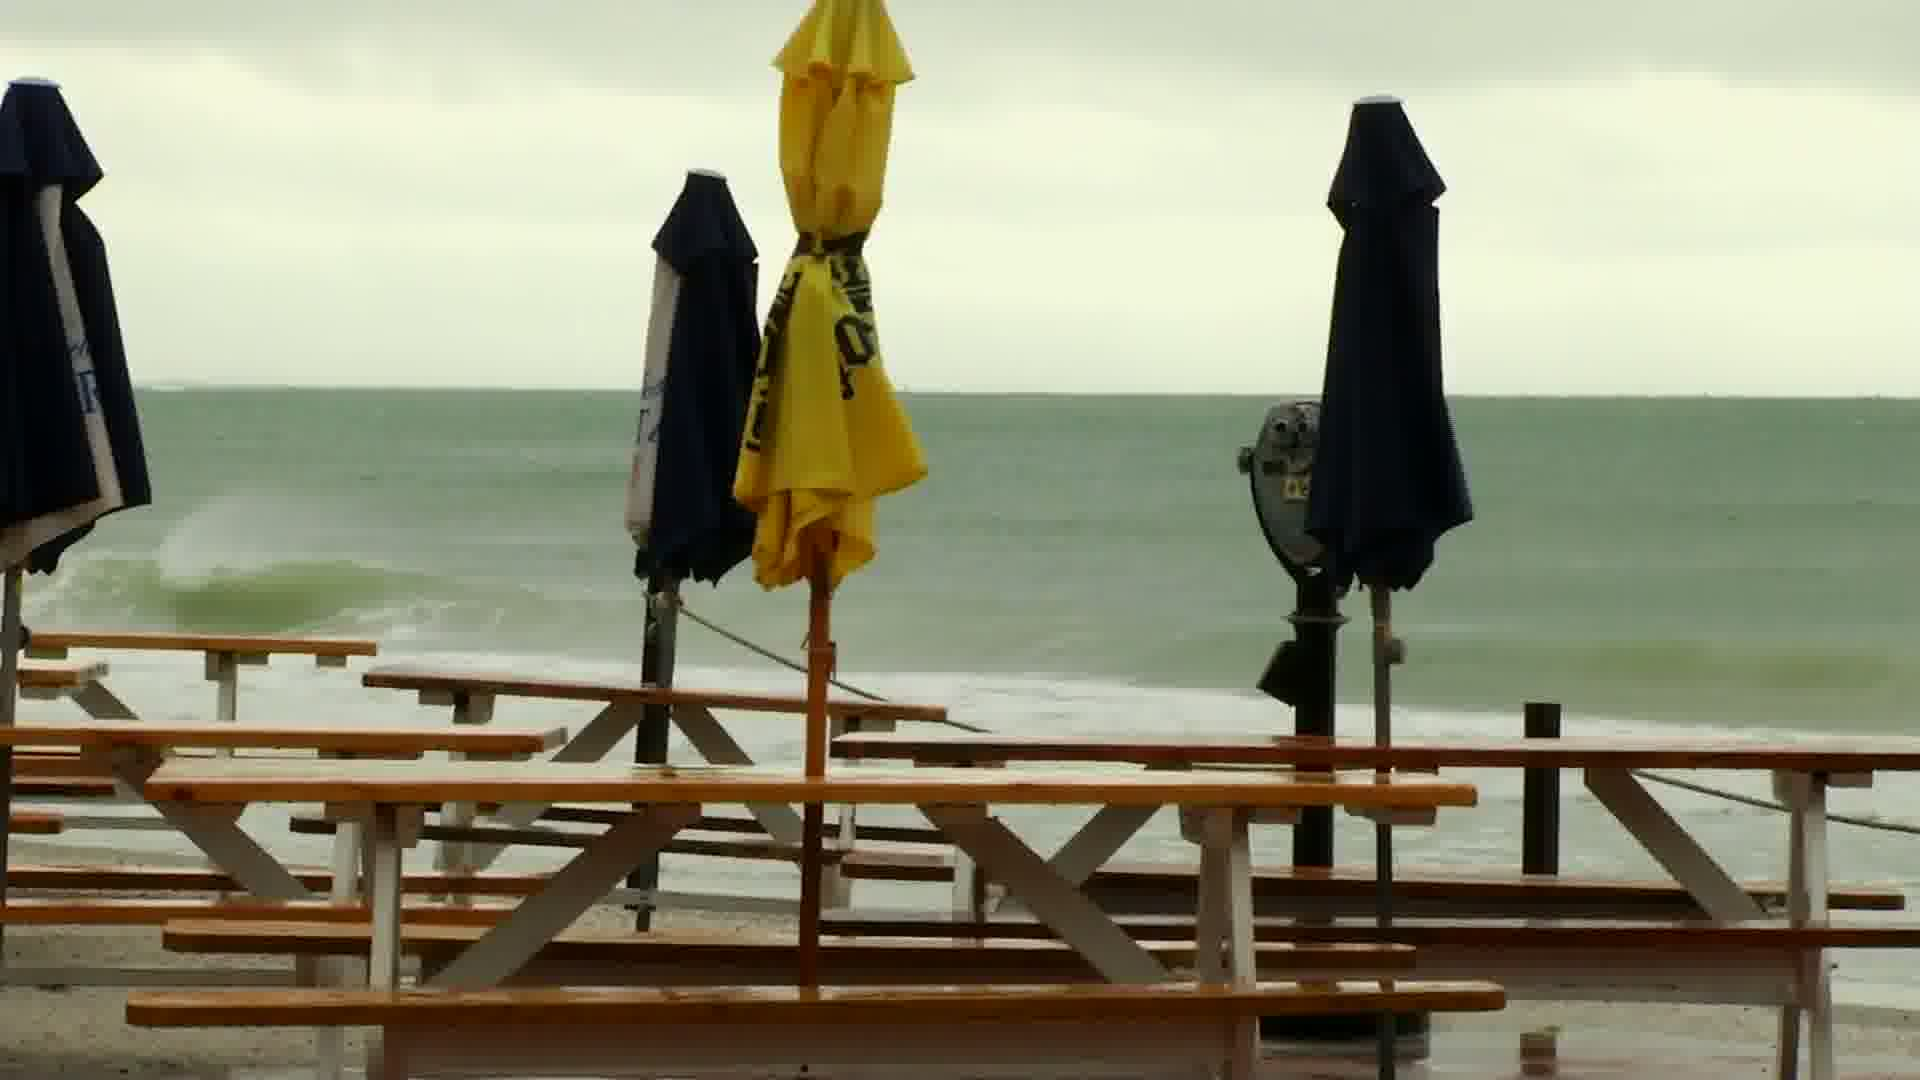 Beaches were empty in Pass-a-Grille, Florida, Monday, July 31, 2017, ahead of Tropical Storm Emily. (Bay News 9)